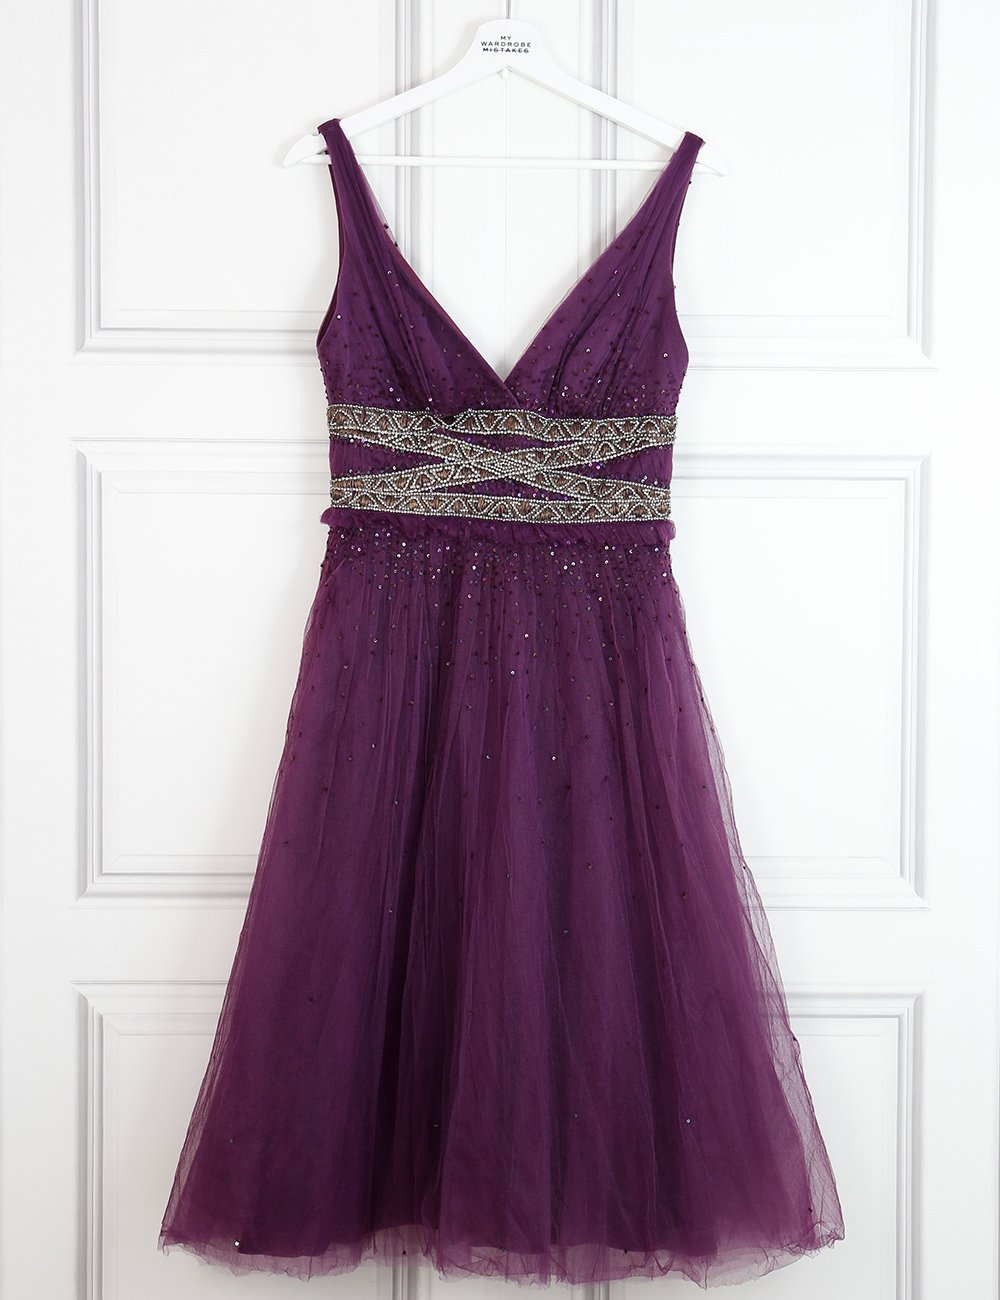 Monique Lhuillier purple cocktail dress with rhinestones 10 UK- My Wardrobe Mistakes